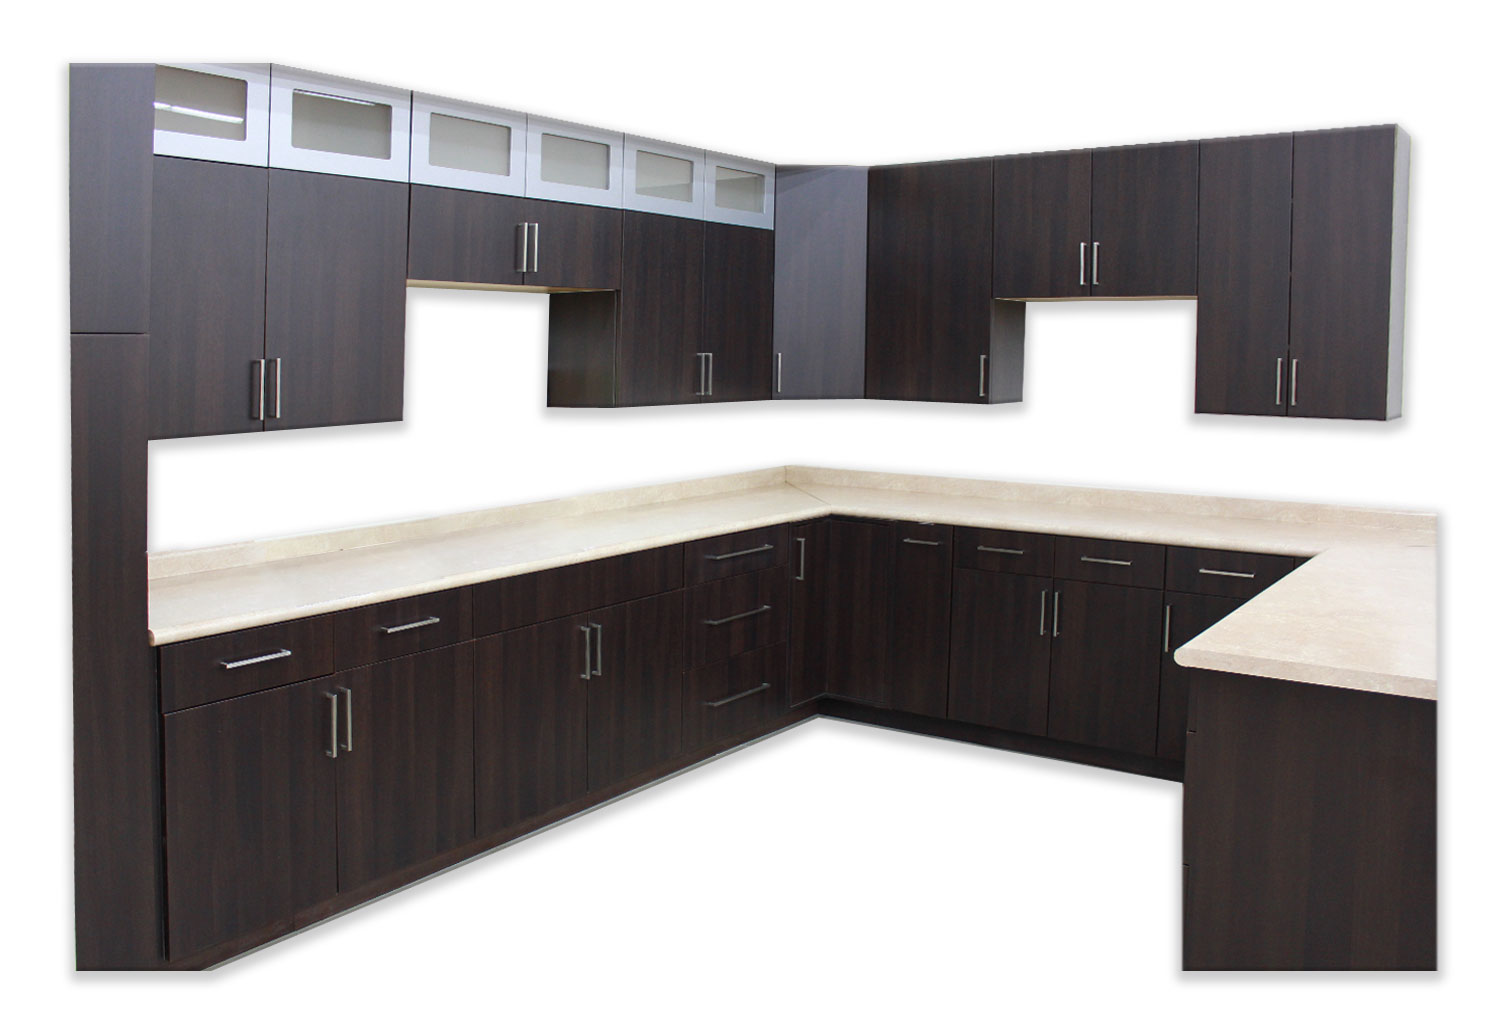 wenge_kitchen_cabinets-3.jpg